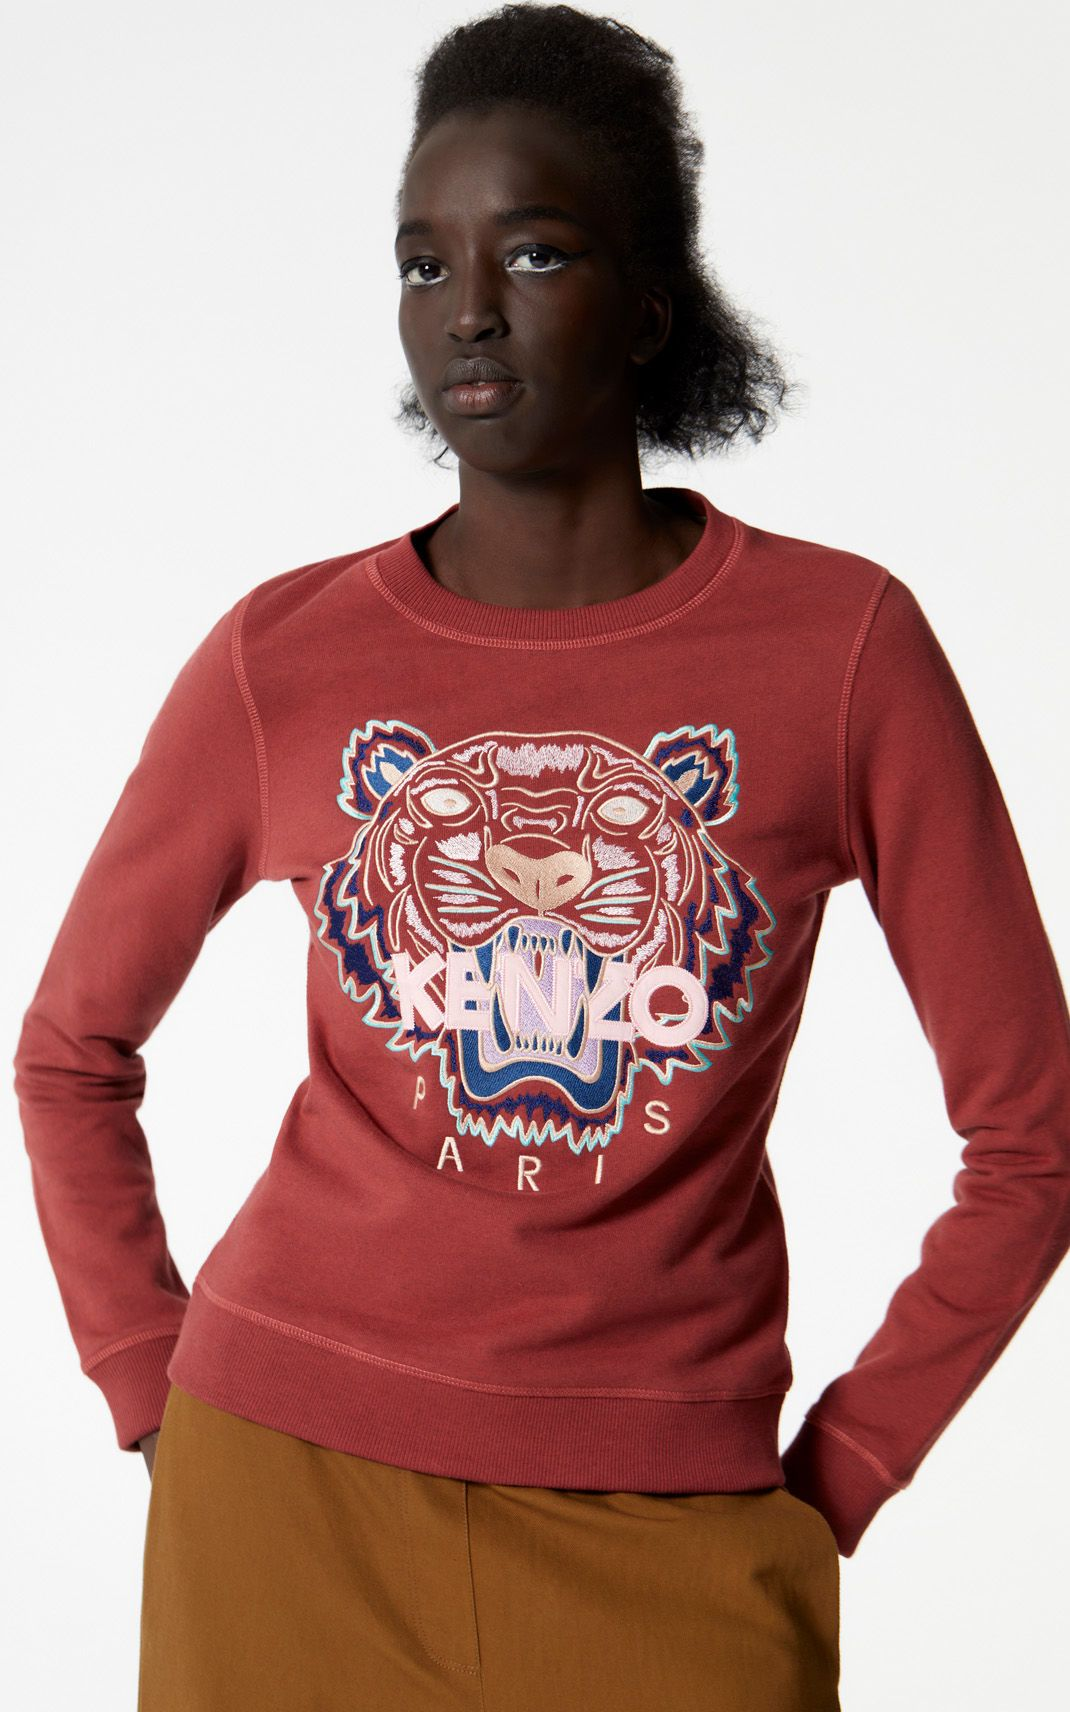 153b39a7 Tiger sweatshirt Kenzo for - Shop at Kenzo.com official online store ...